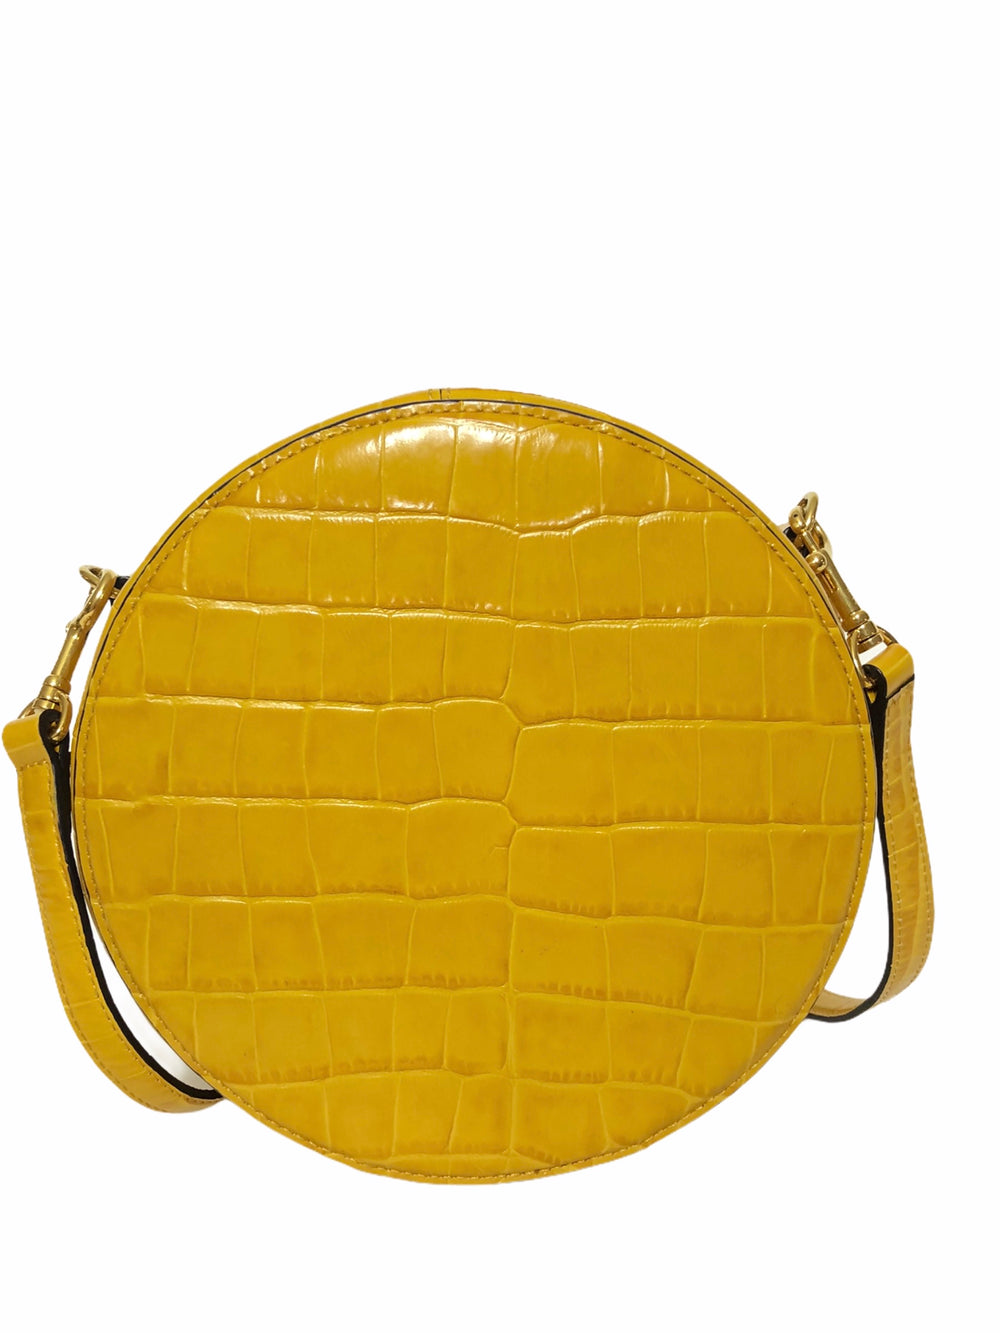 Mulberry Mustard Yellow Leather